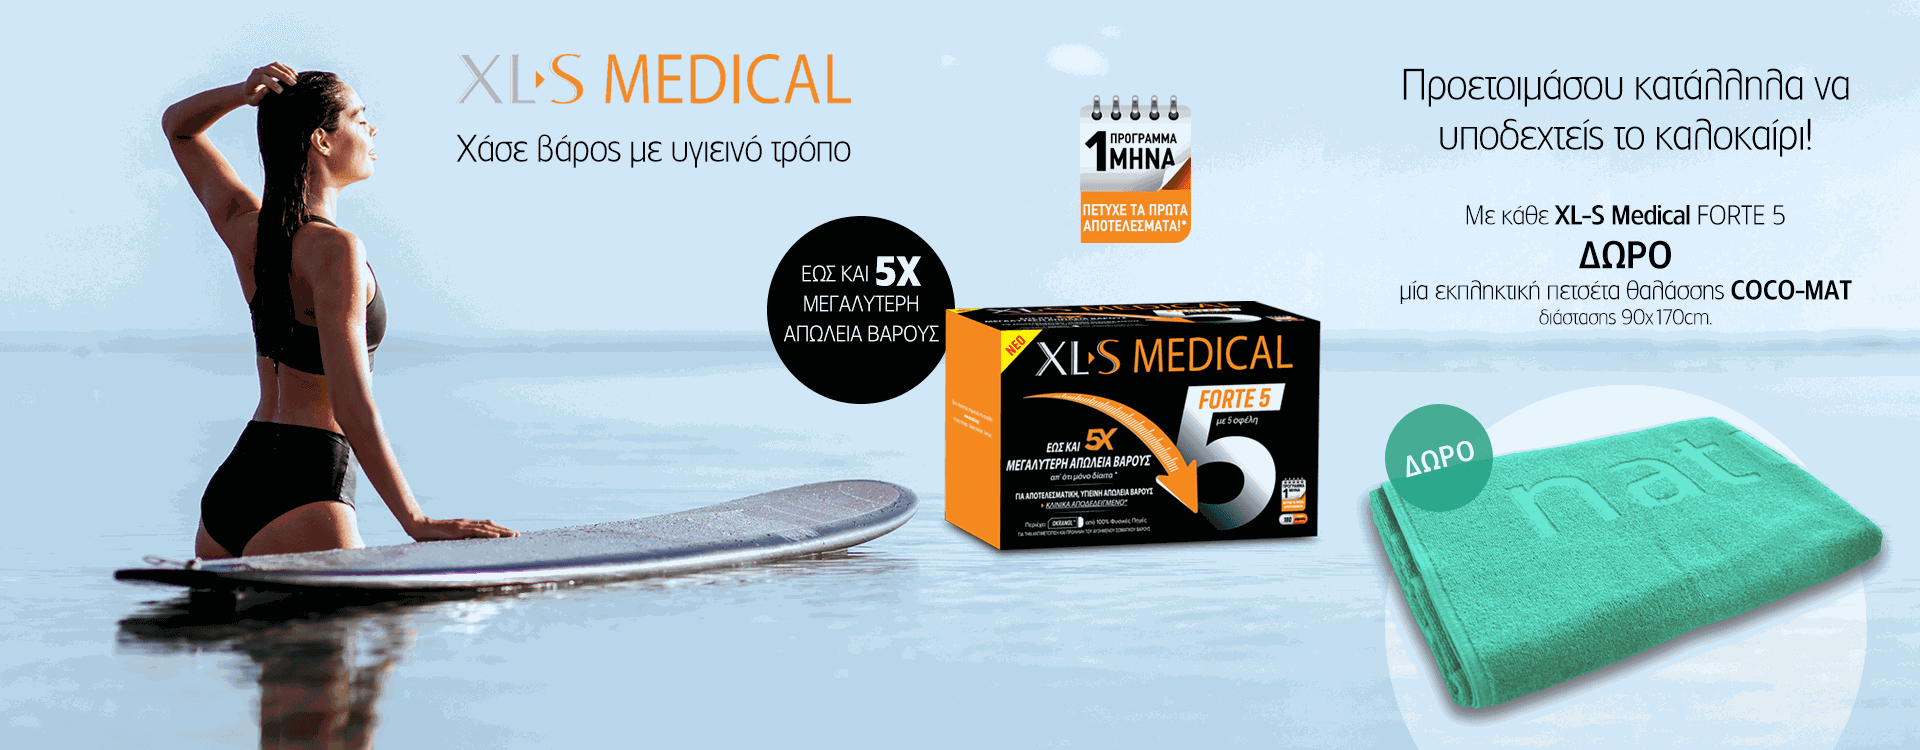 Slider xls medical apr19 1920x750